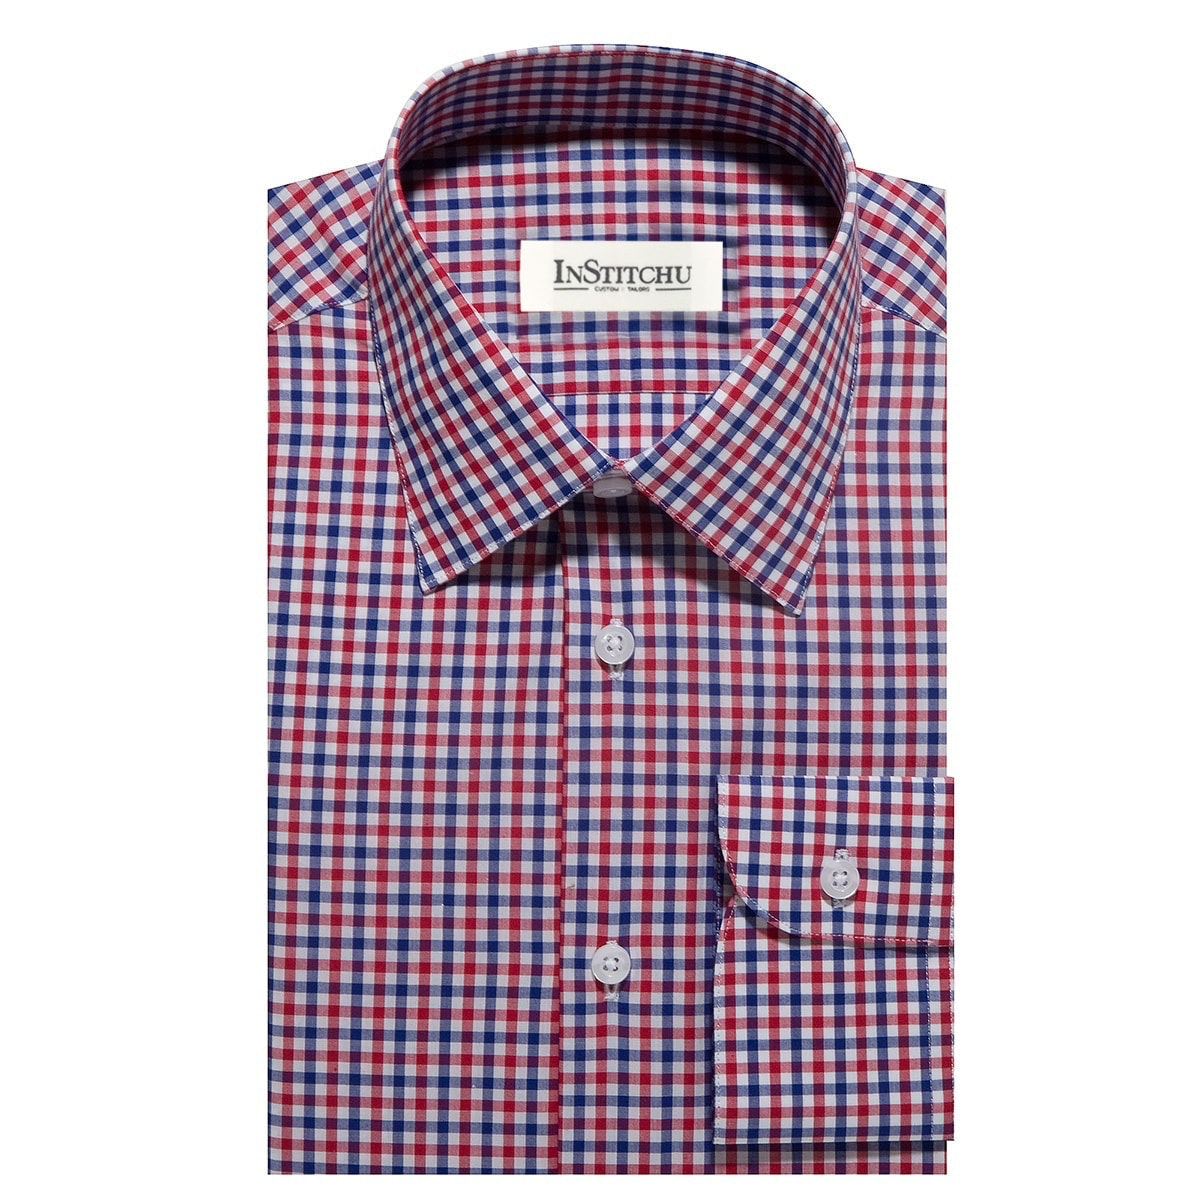 InStitchu Collection The Kure Red, White and Blue Check Shirt